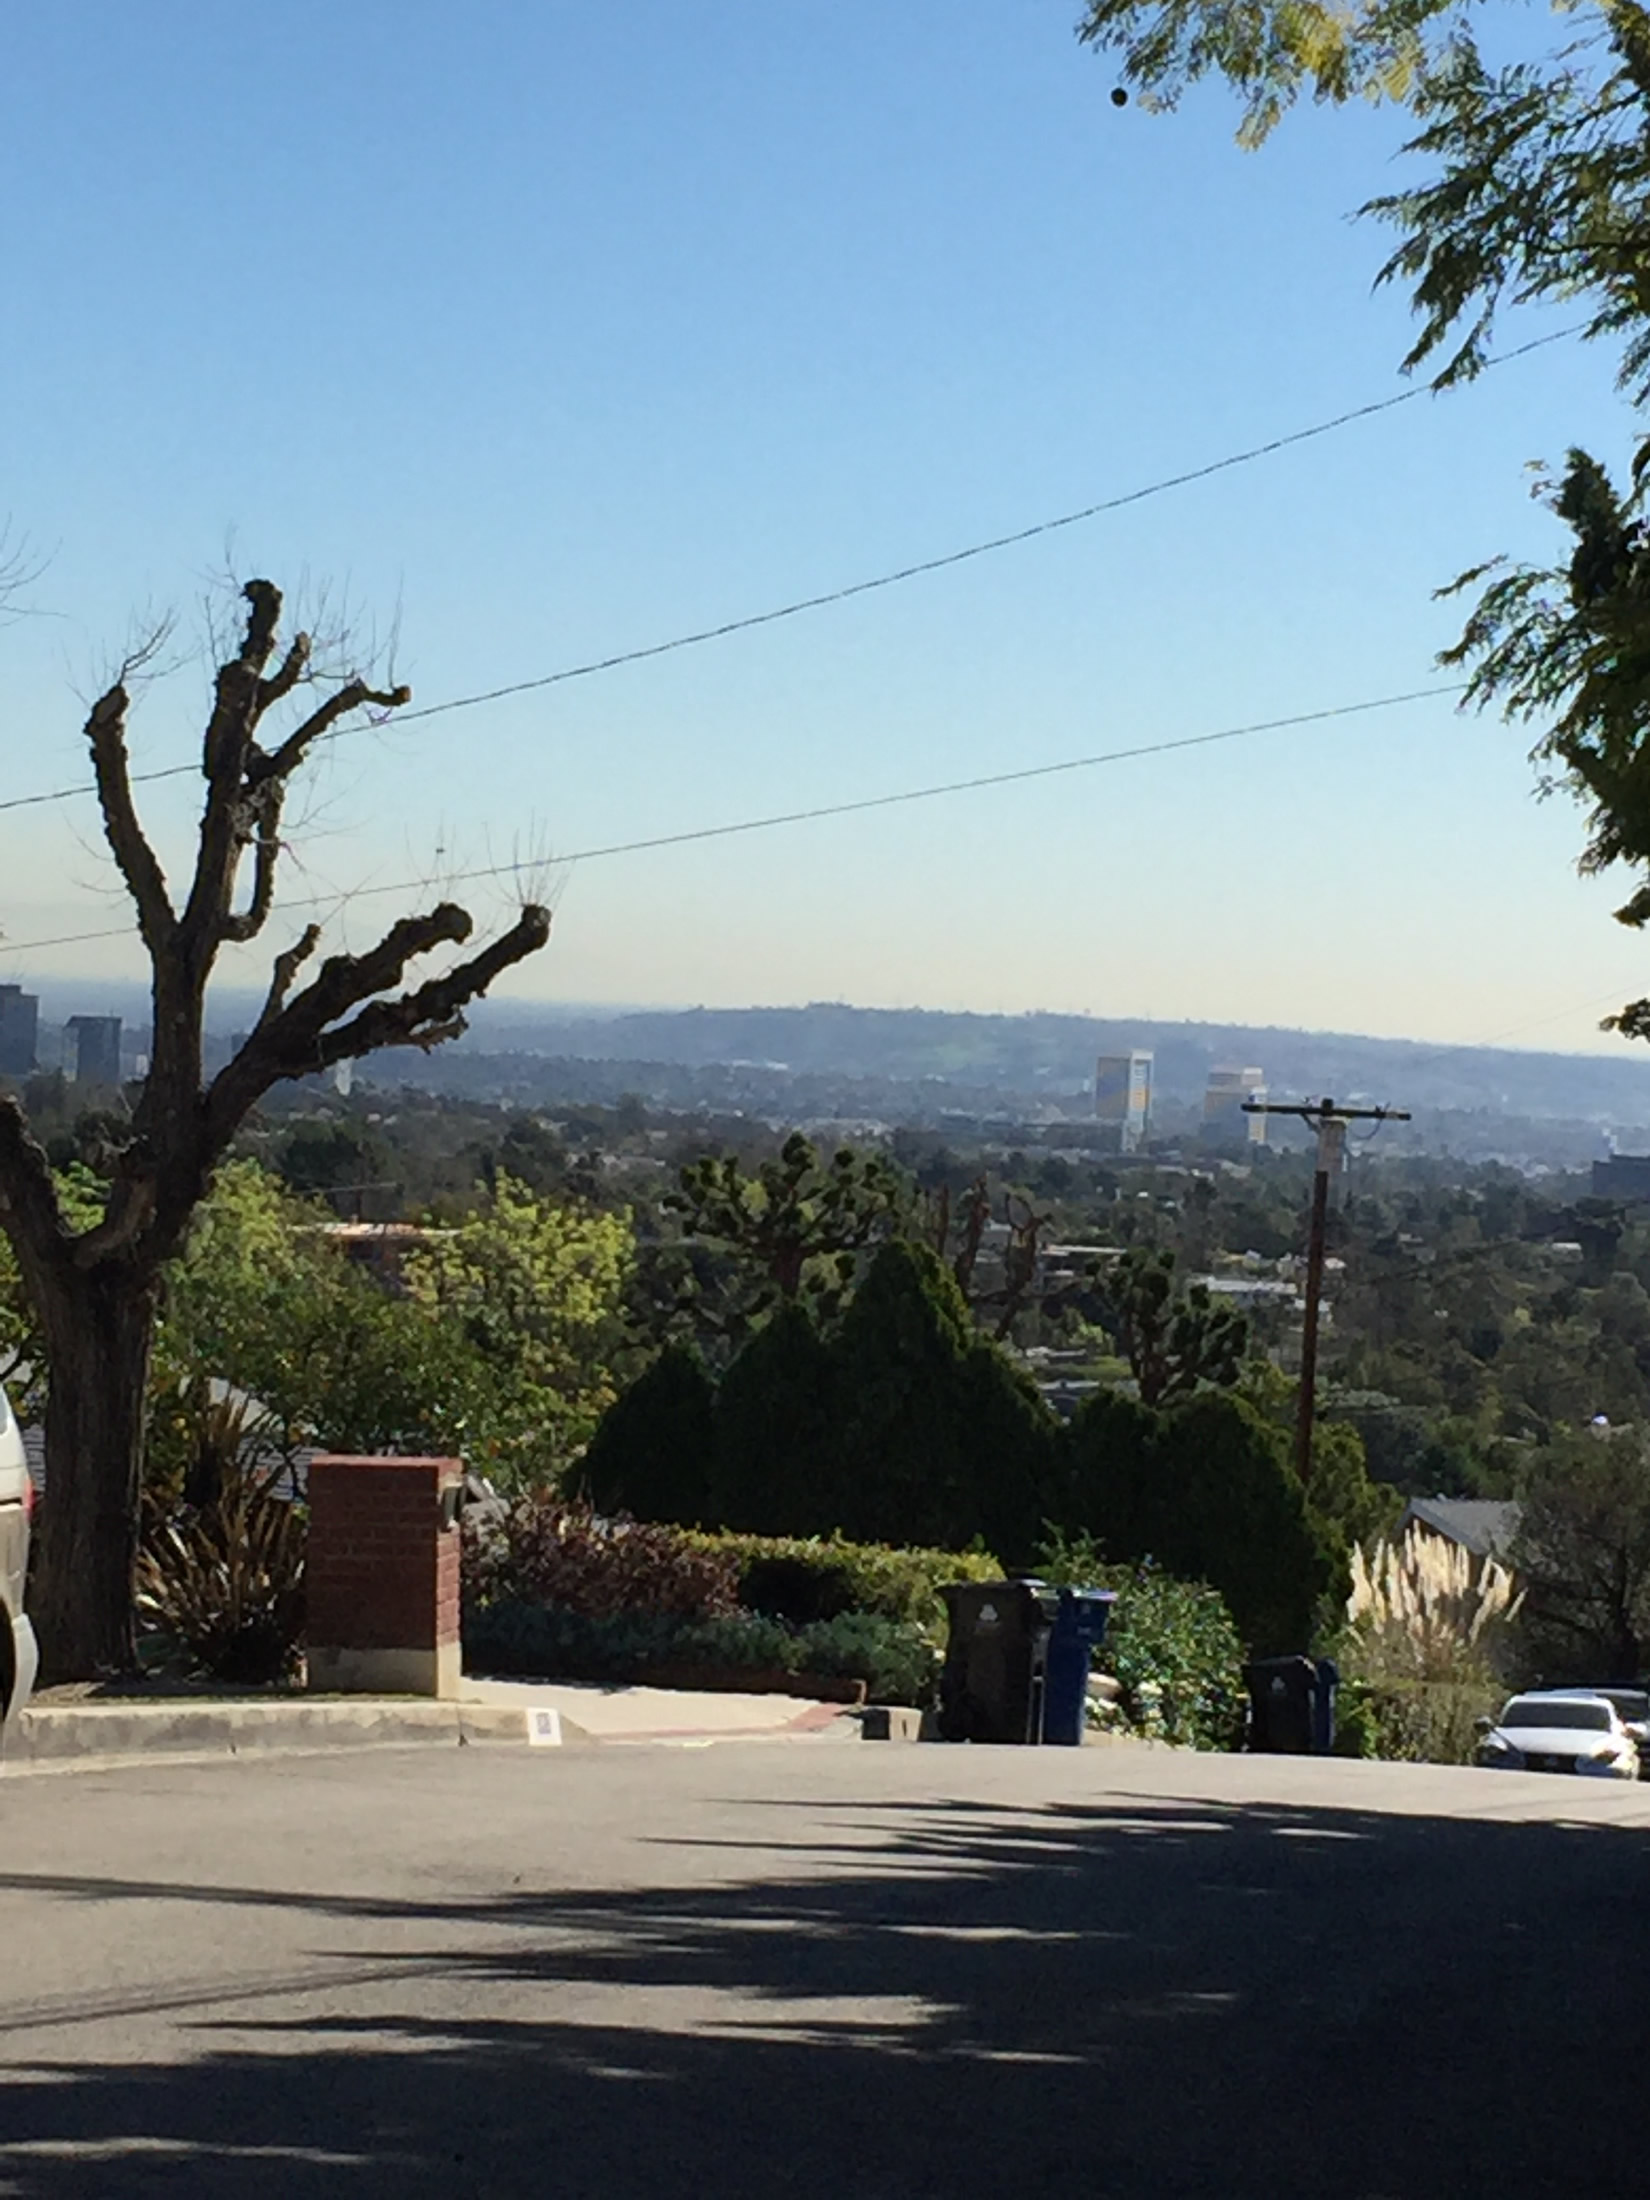 Image 17. View of Los Angeles from a housing development in the Santa Monica Mountains where homes begin at roughly $2,000,000 (in January, 2016), Brentwood, Los Angeles, USA. Photo by author, 26 January 2016.